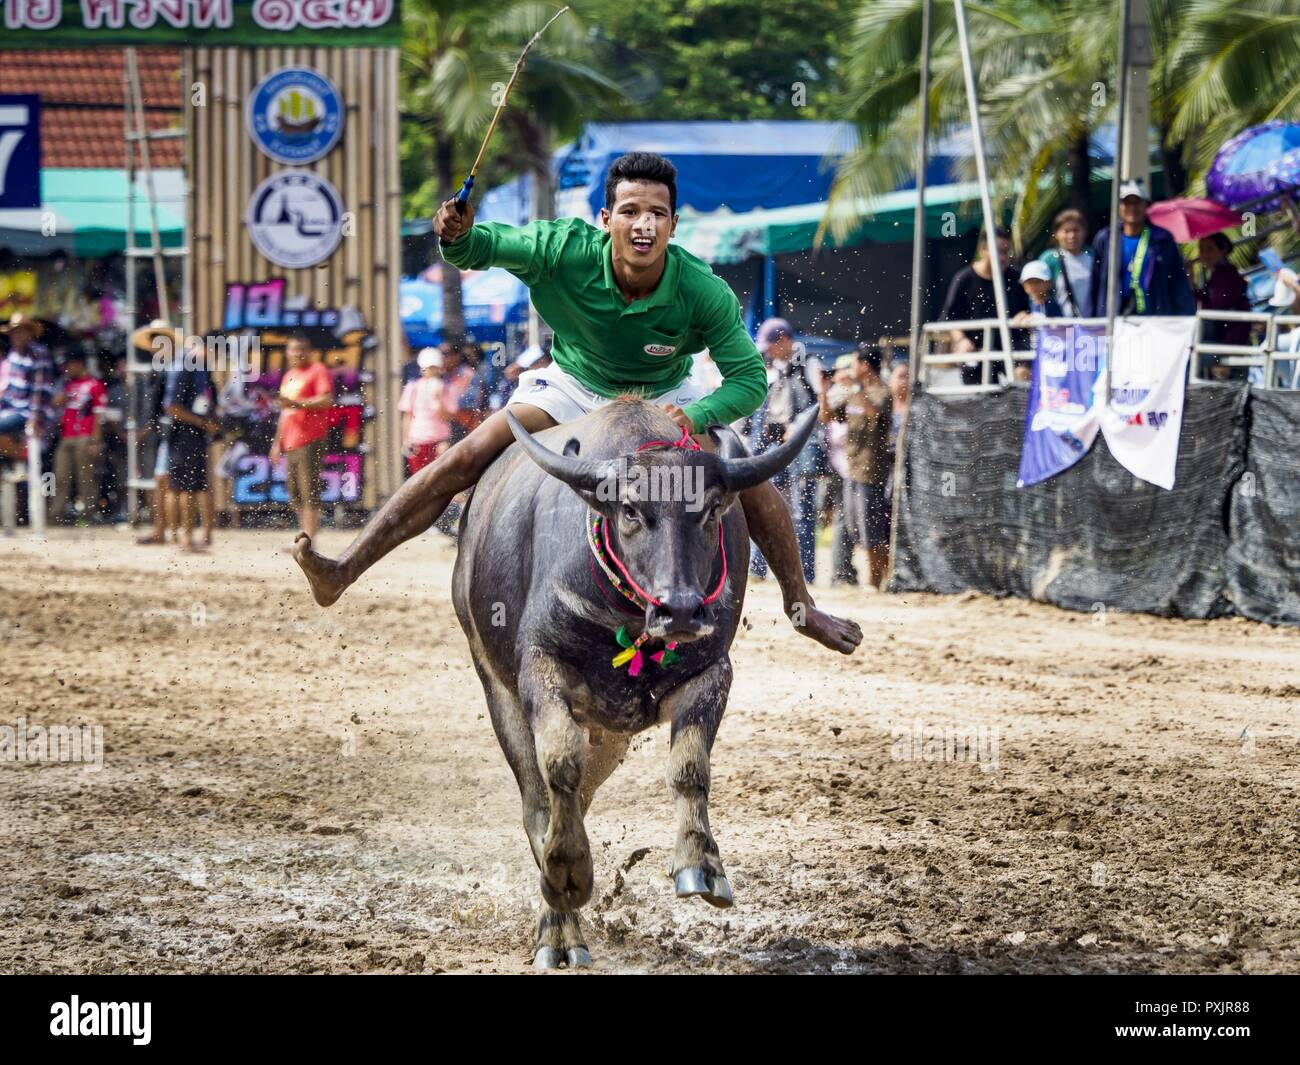 Chonburi, Chonburi, Thailand. 23rd Oct, 2018. A jockey rides a water buffalo in the races in Chonburi. Contestants race water buffalo about 100 meters down a muddy straight away. The buffalo races in Chonburi first took place in 1912 for Thai King Rama VI. Now the races have evolved into a festival that marks the end of Buddhist Lent and is held on the first full moon of the 11th lunar month (either October or November). Thousands of people come to Chonburi, about 90 minutes from Bangkok, for the races and carnival midway. Credit: Jack Kurtz/ZUMA Wire/Alamy Live News Stock Photo